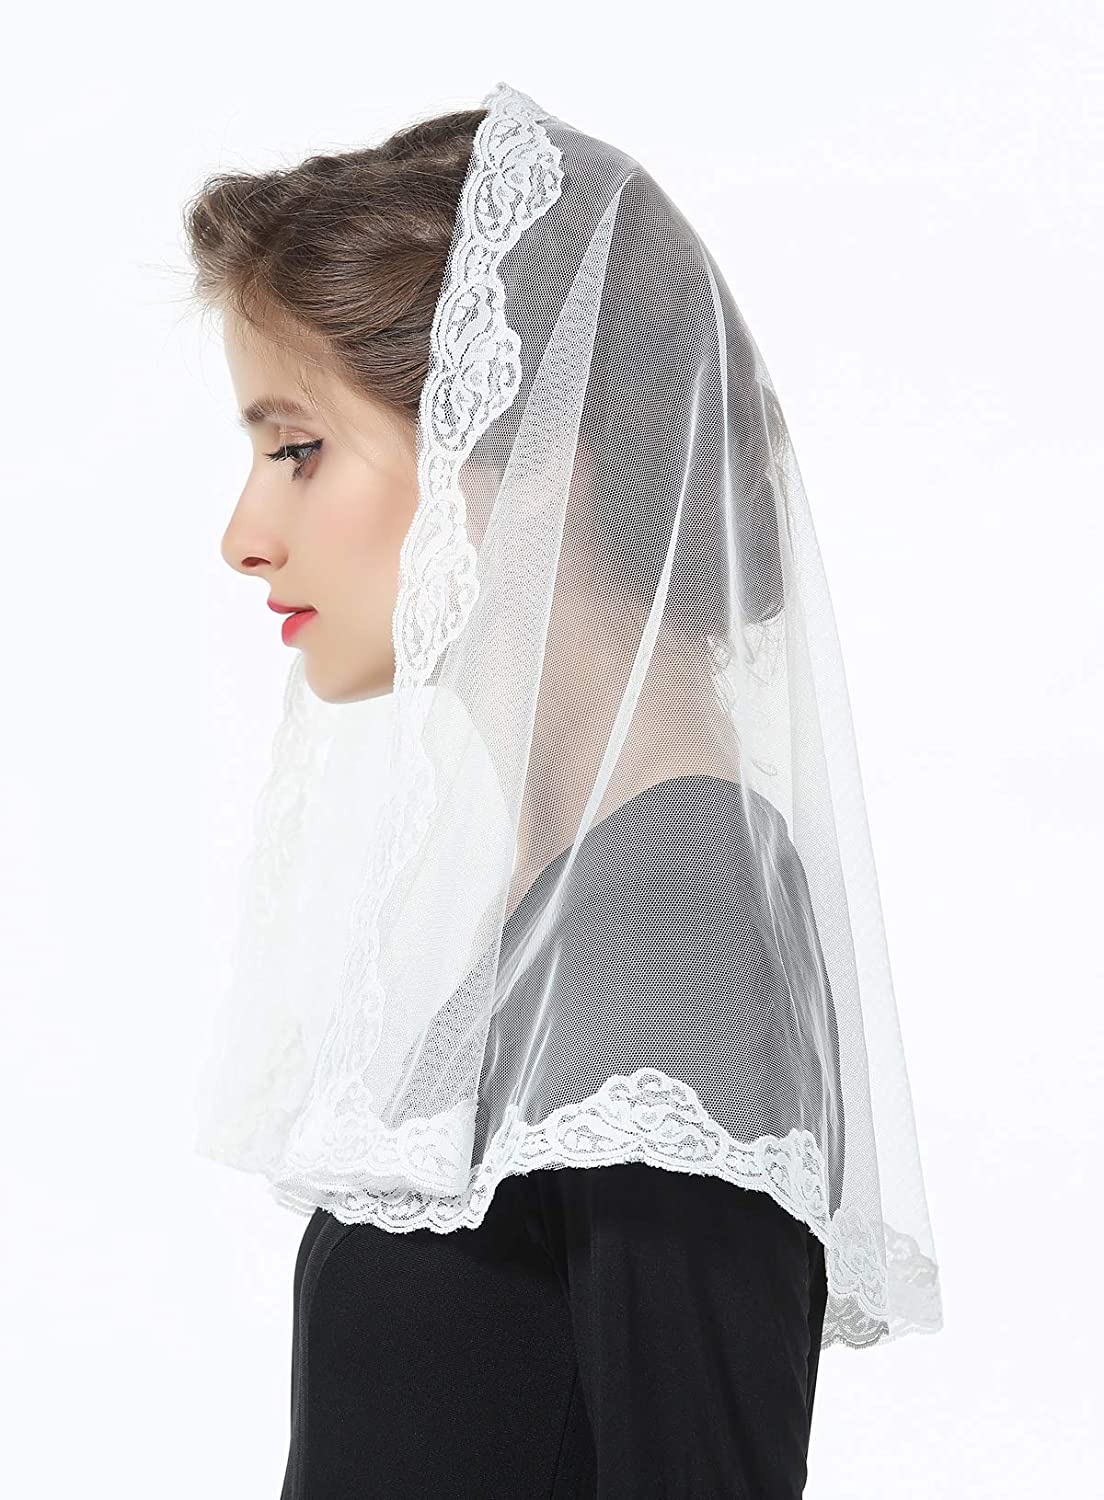 Lace Veil Church Cathedral Catholic Chapel Communion Mantilla Latin Mass Head Cover Easter Off White